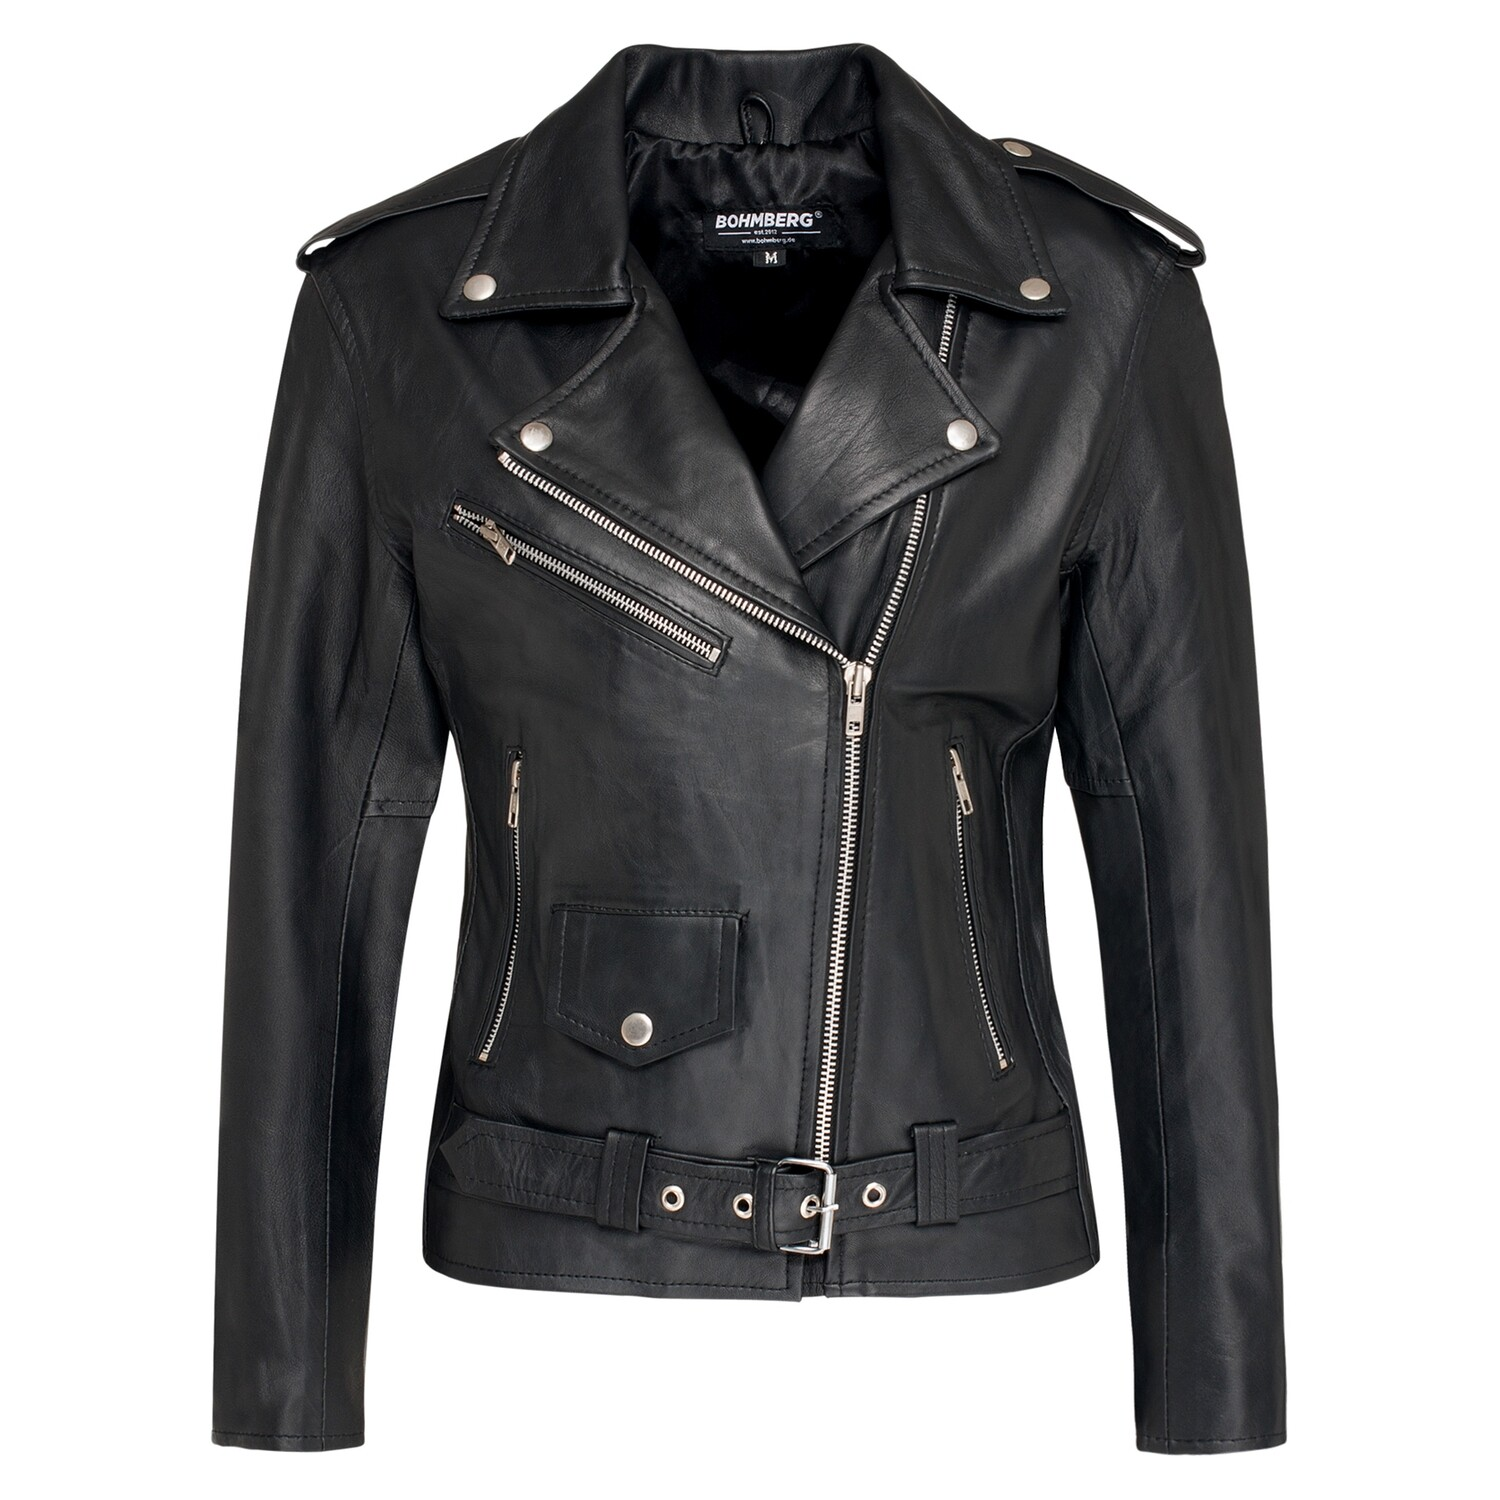 Bohmberg Women's Leather Jacket CALYPSO made of soft Goat Nappa Leather in Premium Quality